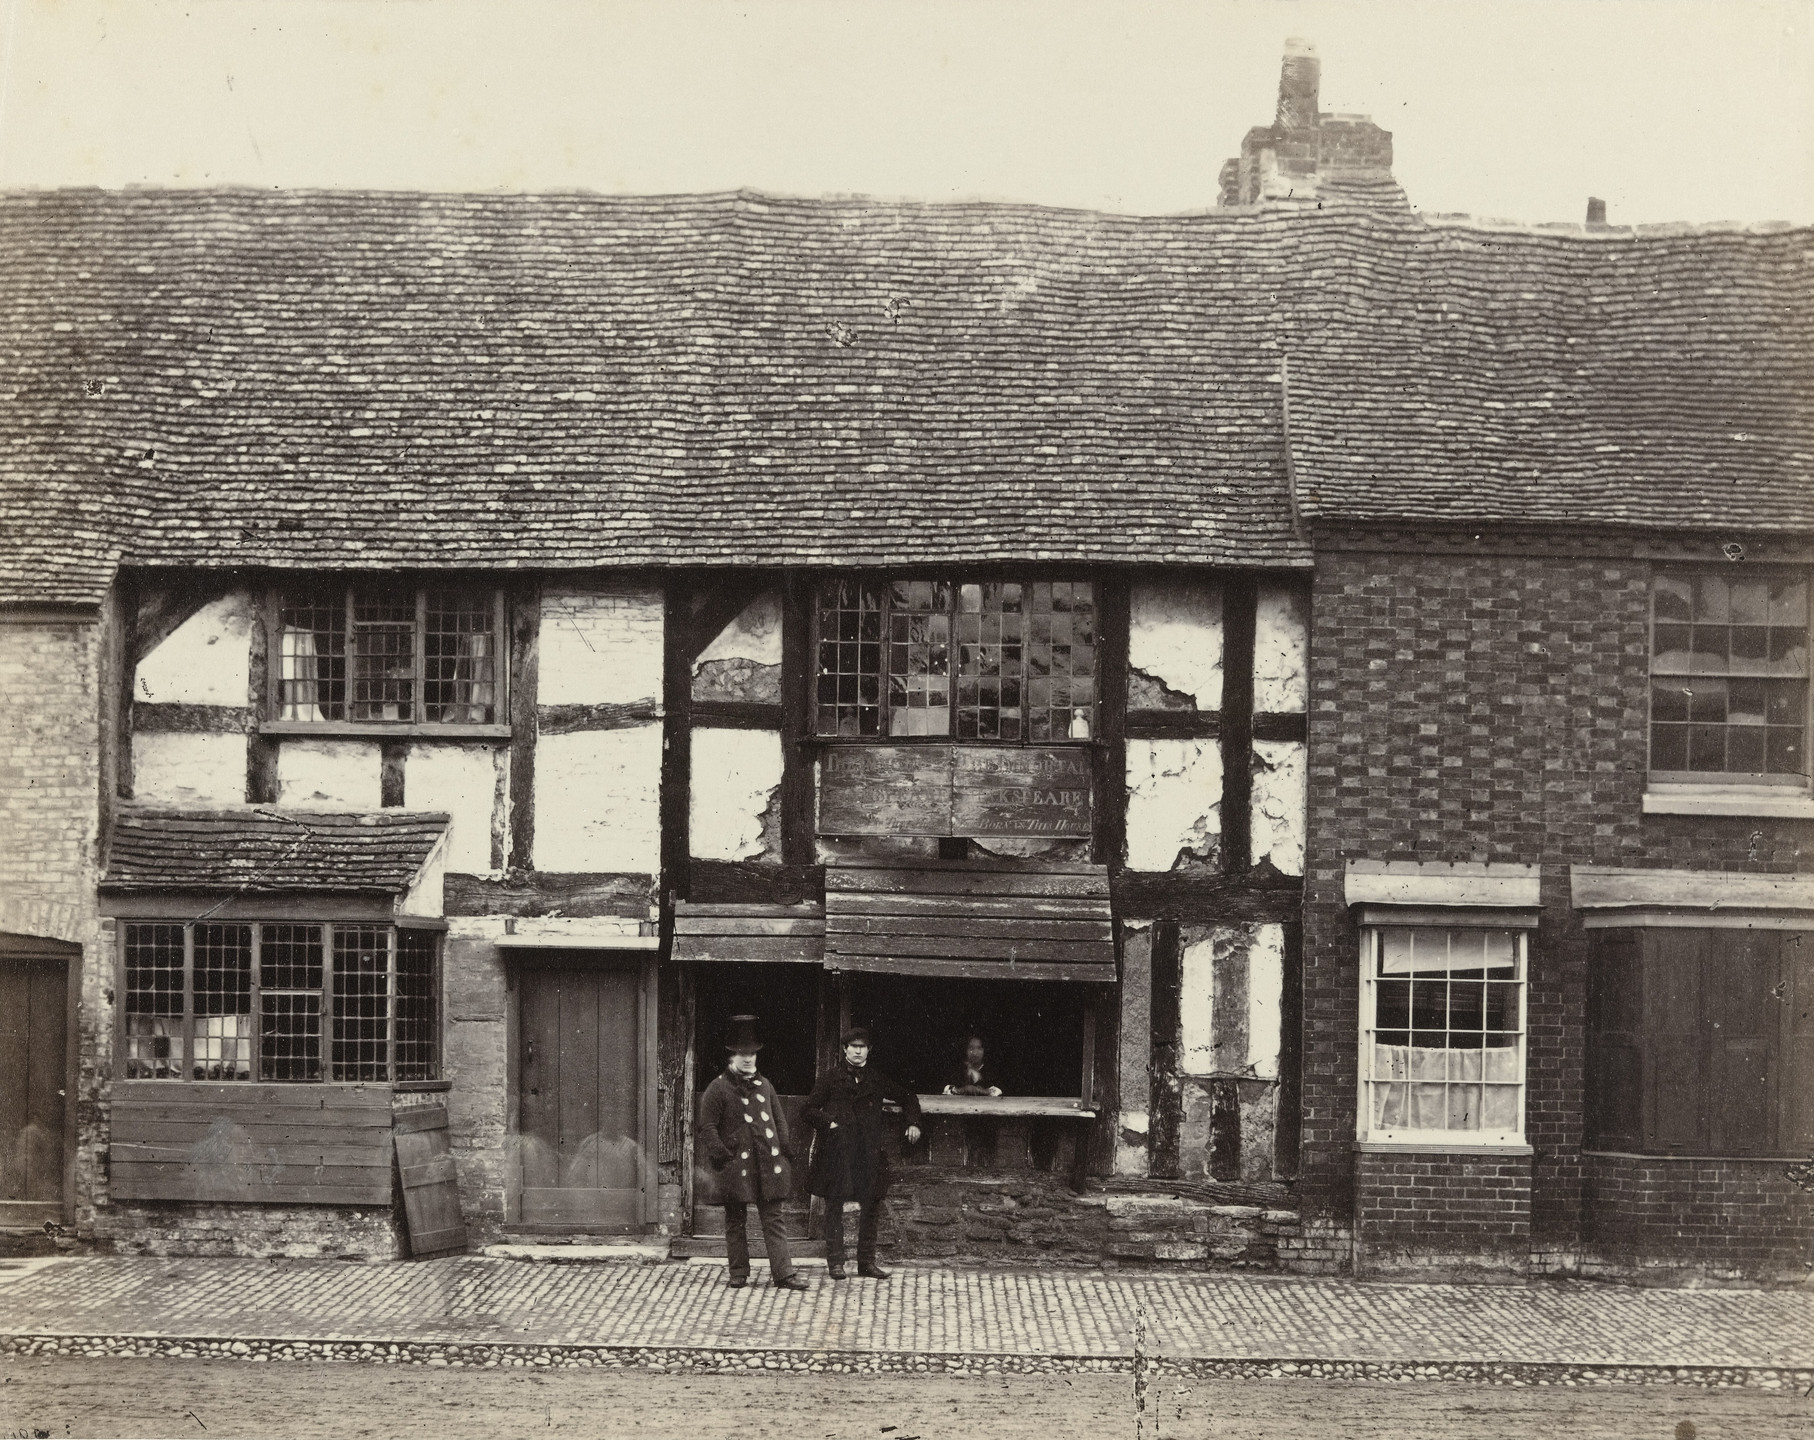 Francis Frith. Shakespeare's House, Stratford-On-Avon. c. 1860